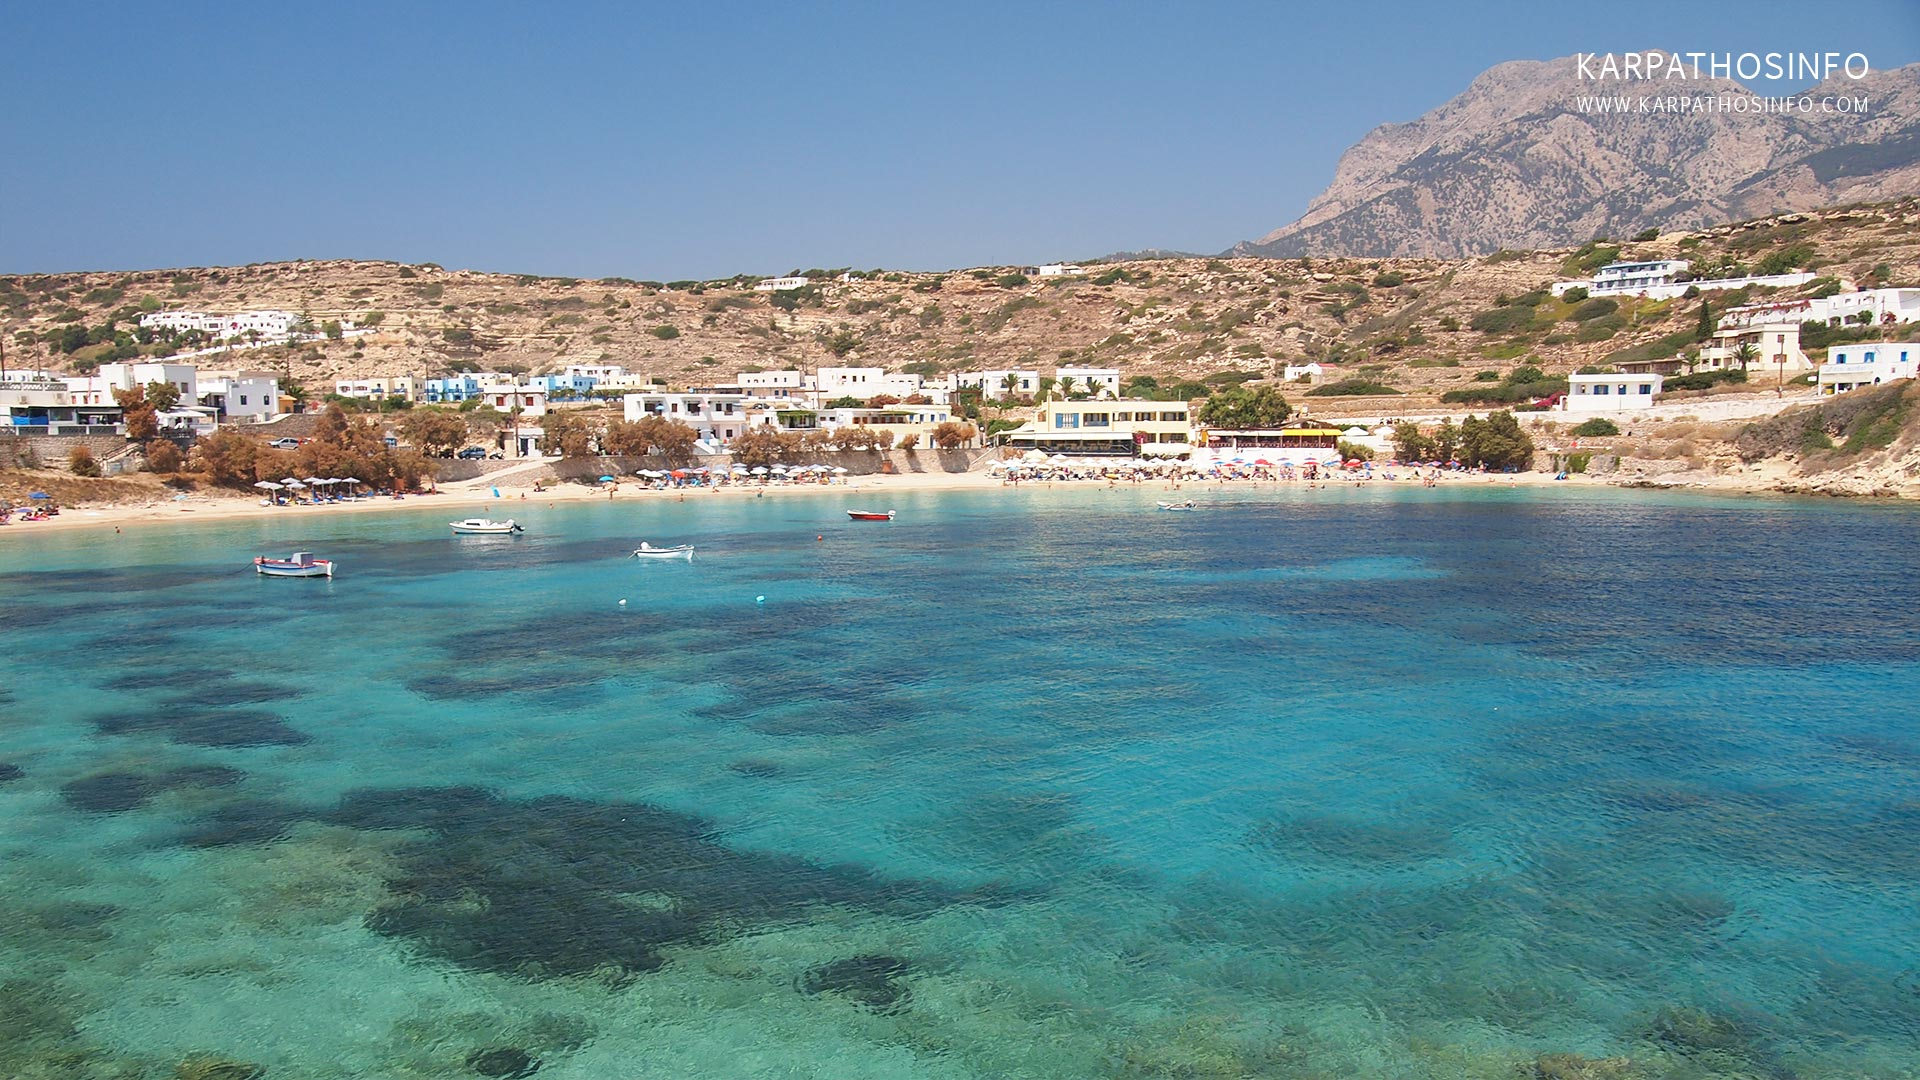 images/slider/lefkos-main-beach-karpathos.jpg